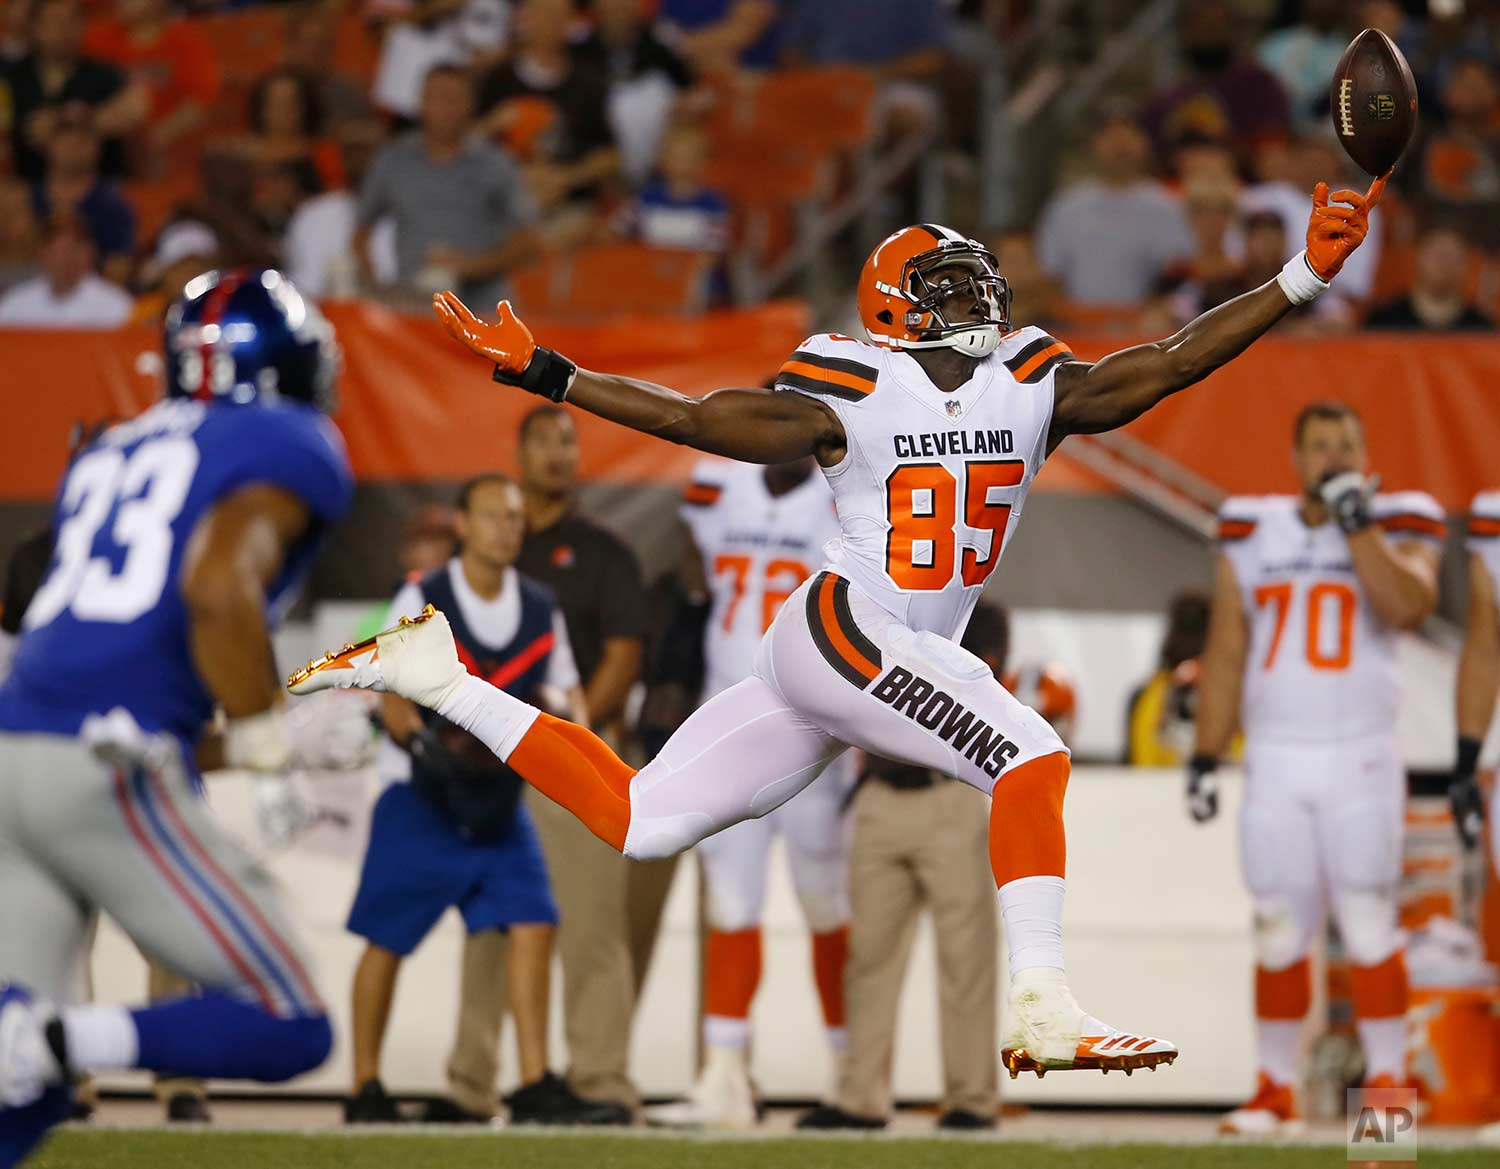 Cleveland Browns tight end David Njoku (85) reaches but can't get to the ball in the second half of an NFL preseason football game against the New York Giants, Monday, Aug. 21, 2017, in Cleveland. (AP Photo/Ron Schwane)